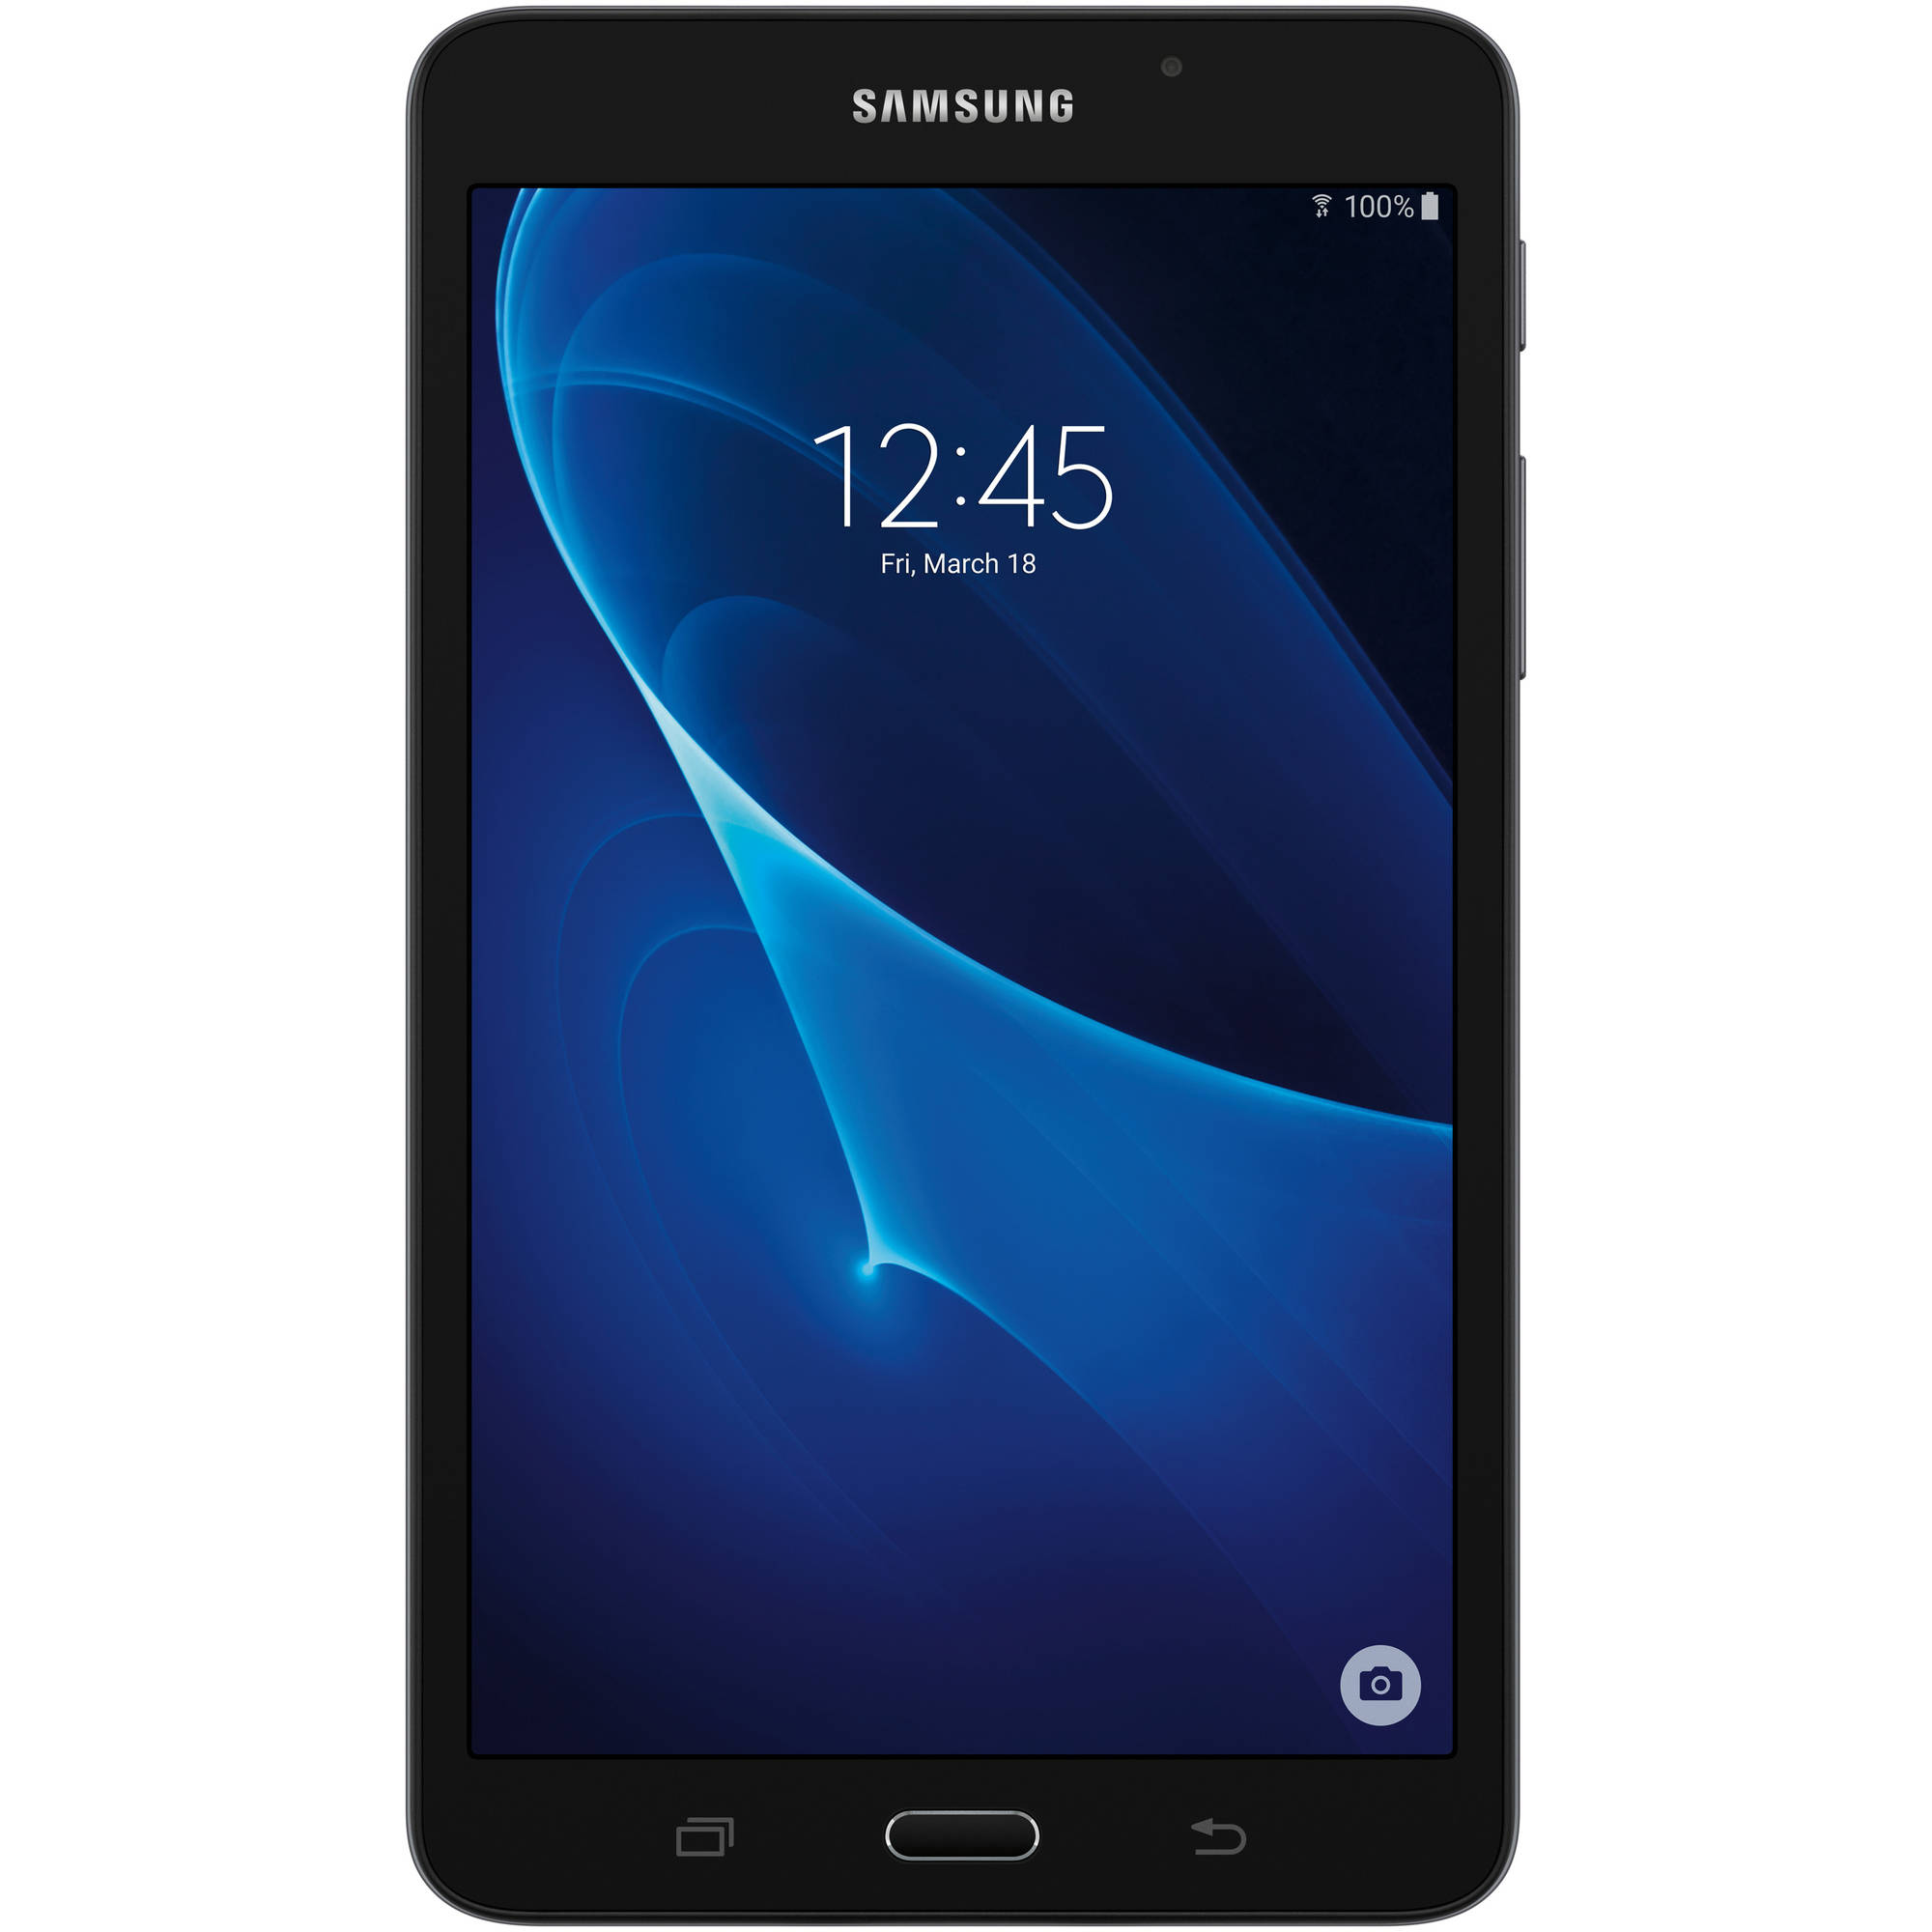 "SAMSUNG Galaxy Tab A-7.0"" 8GB Android Tablet -Wi-Fi (Model# SM-T280NZKAXAR)"